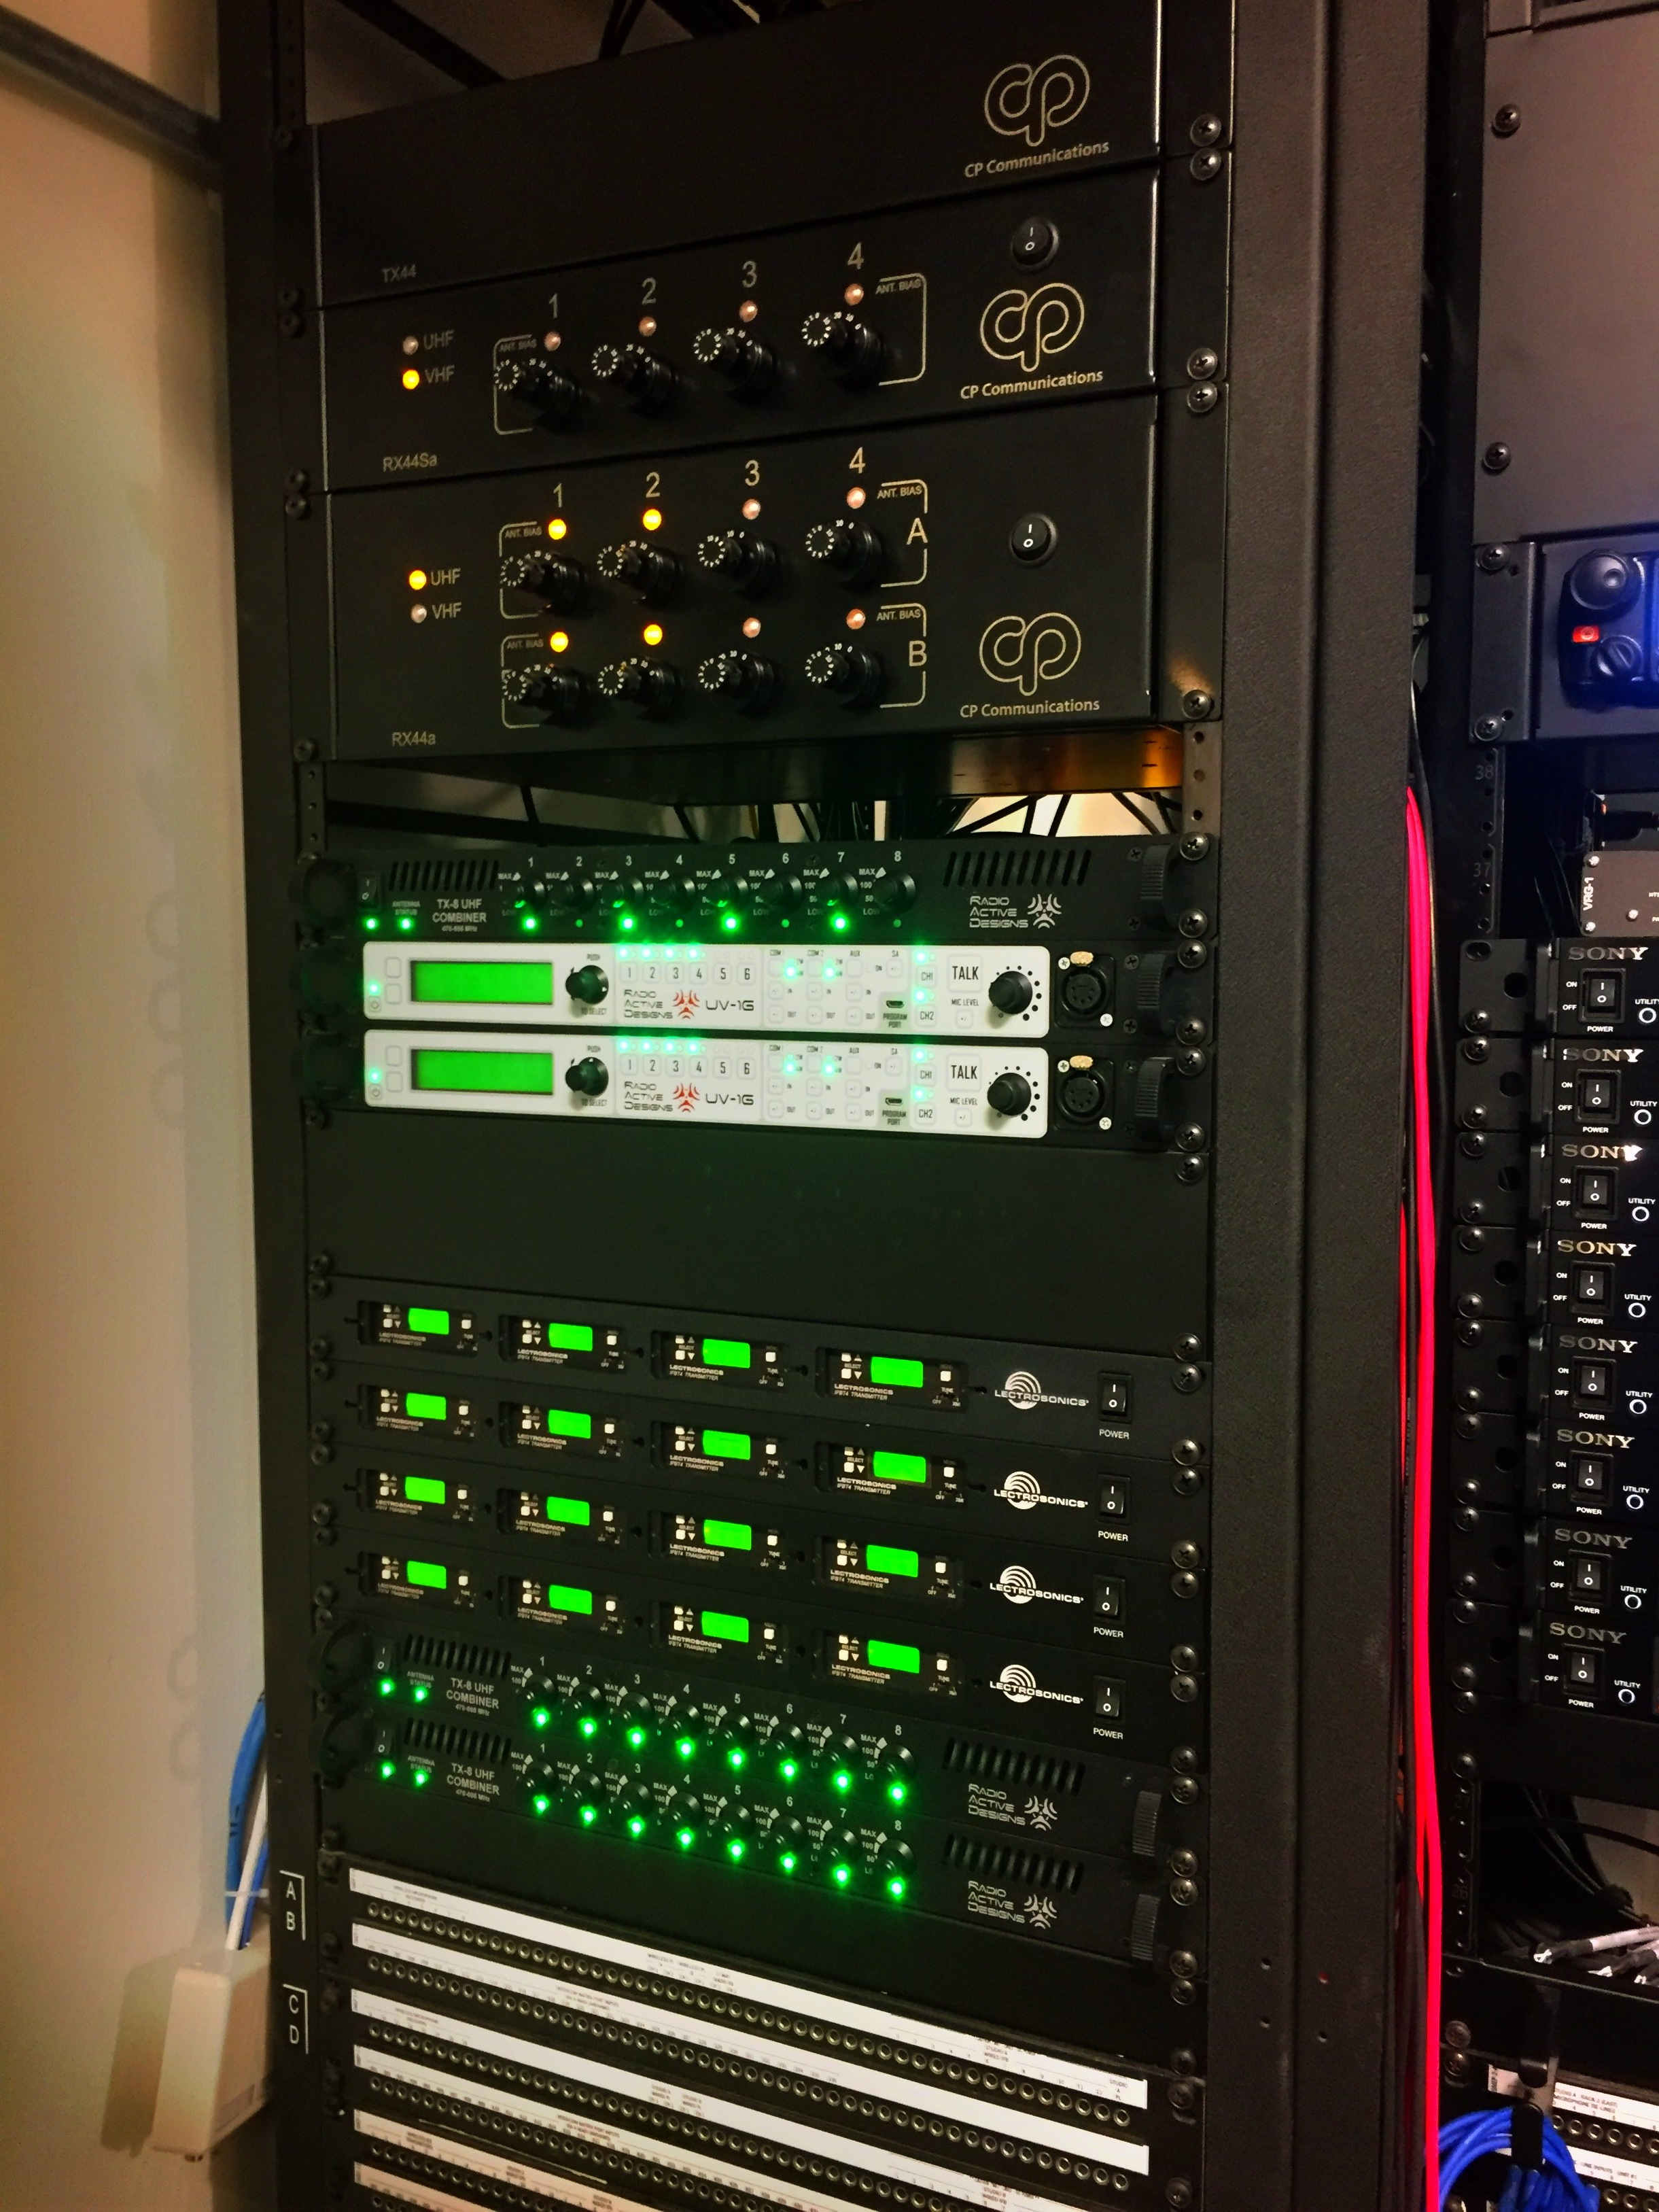 CP Communications  installed all the RF equipment.  At the top are their custom antenna systems allowing coverage in all areas of the facility.   RAD UV-1G  wireless intercom, Lectrosonics IFB are below that all using  TX-8 RF DAs.